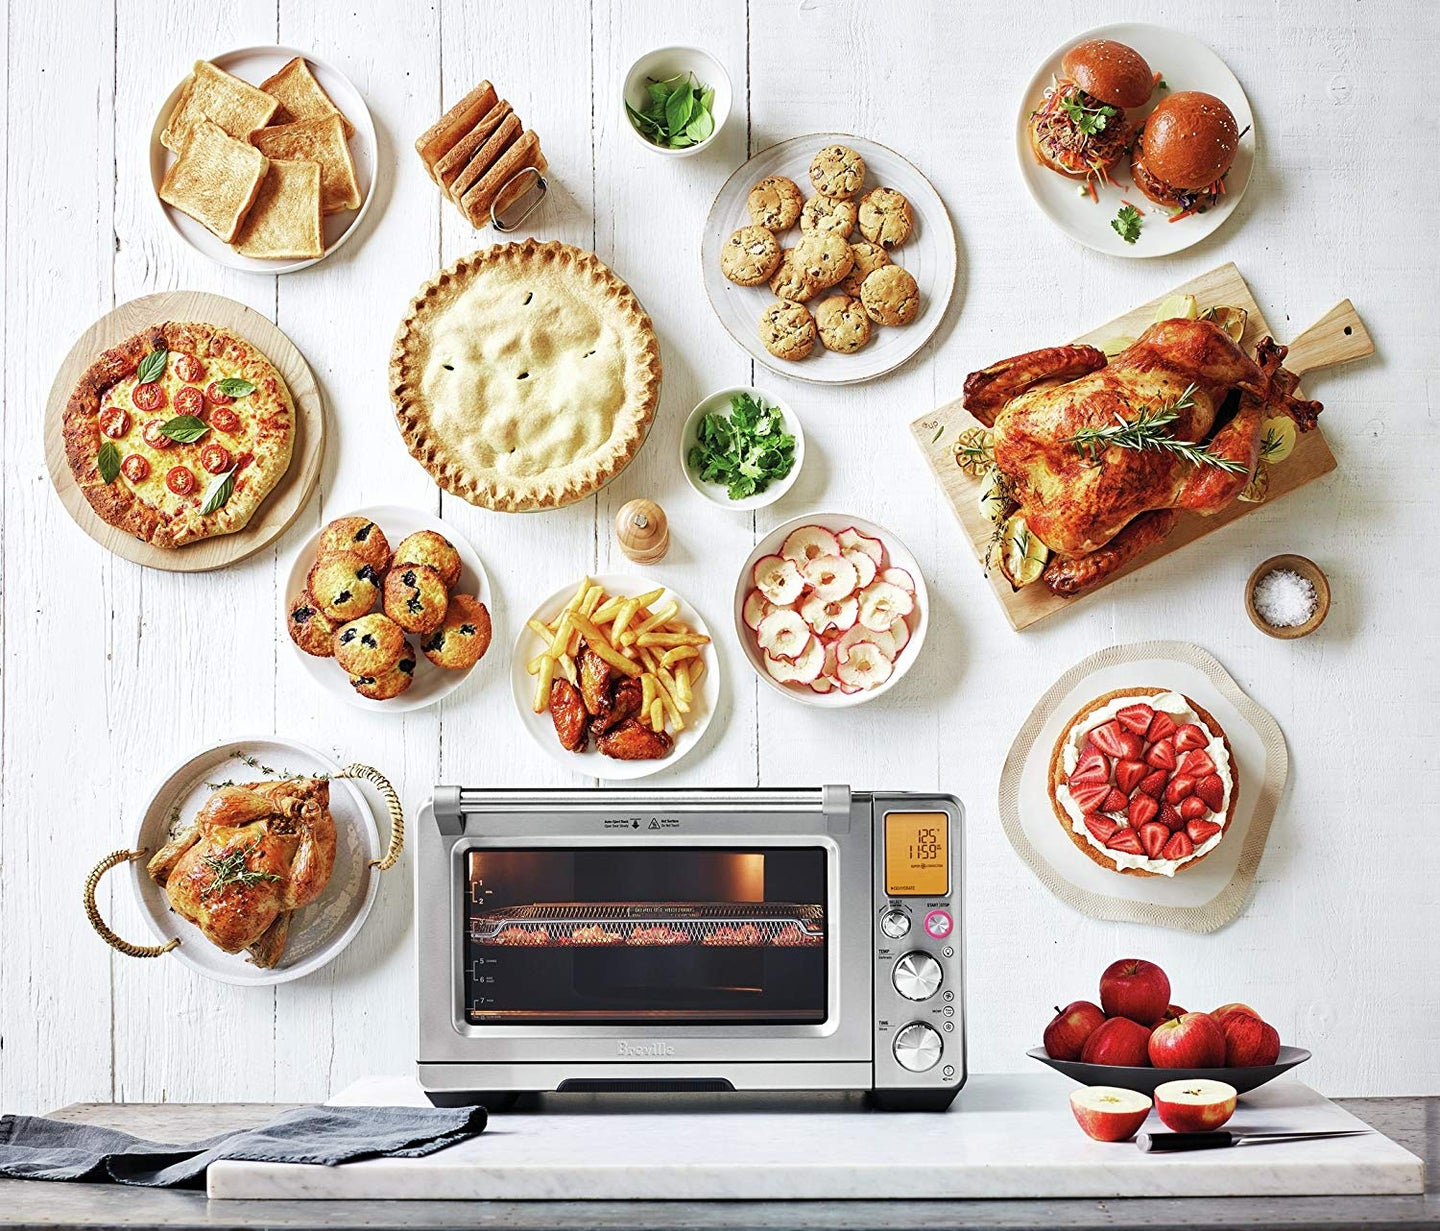 convection oven on a countertop